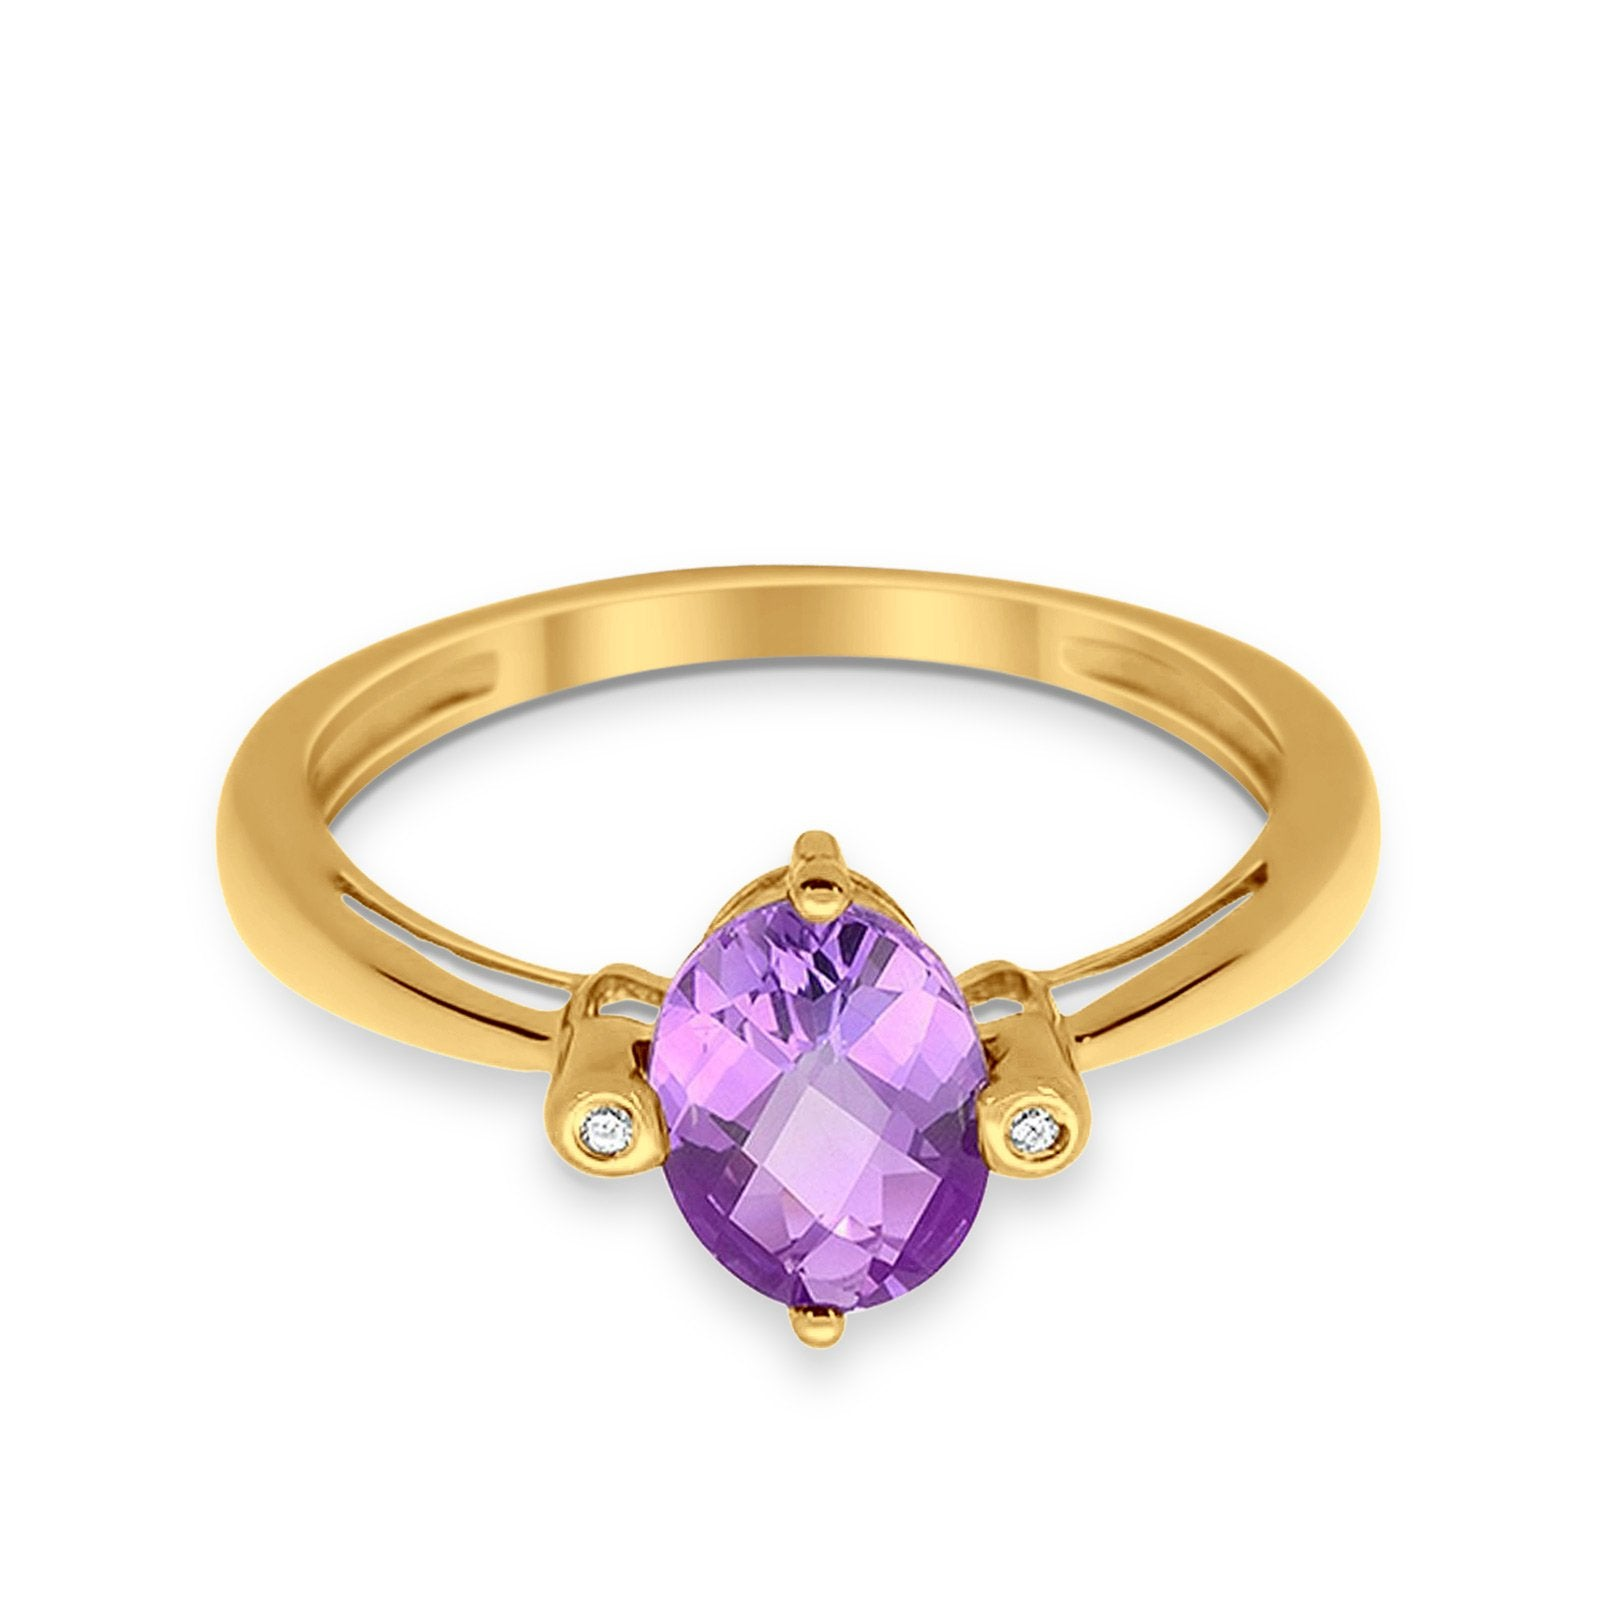 10K Yellow Gold Oval Shape Amethyst 1.1ct Diamond Ring Size 6.5